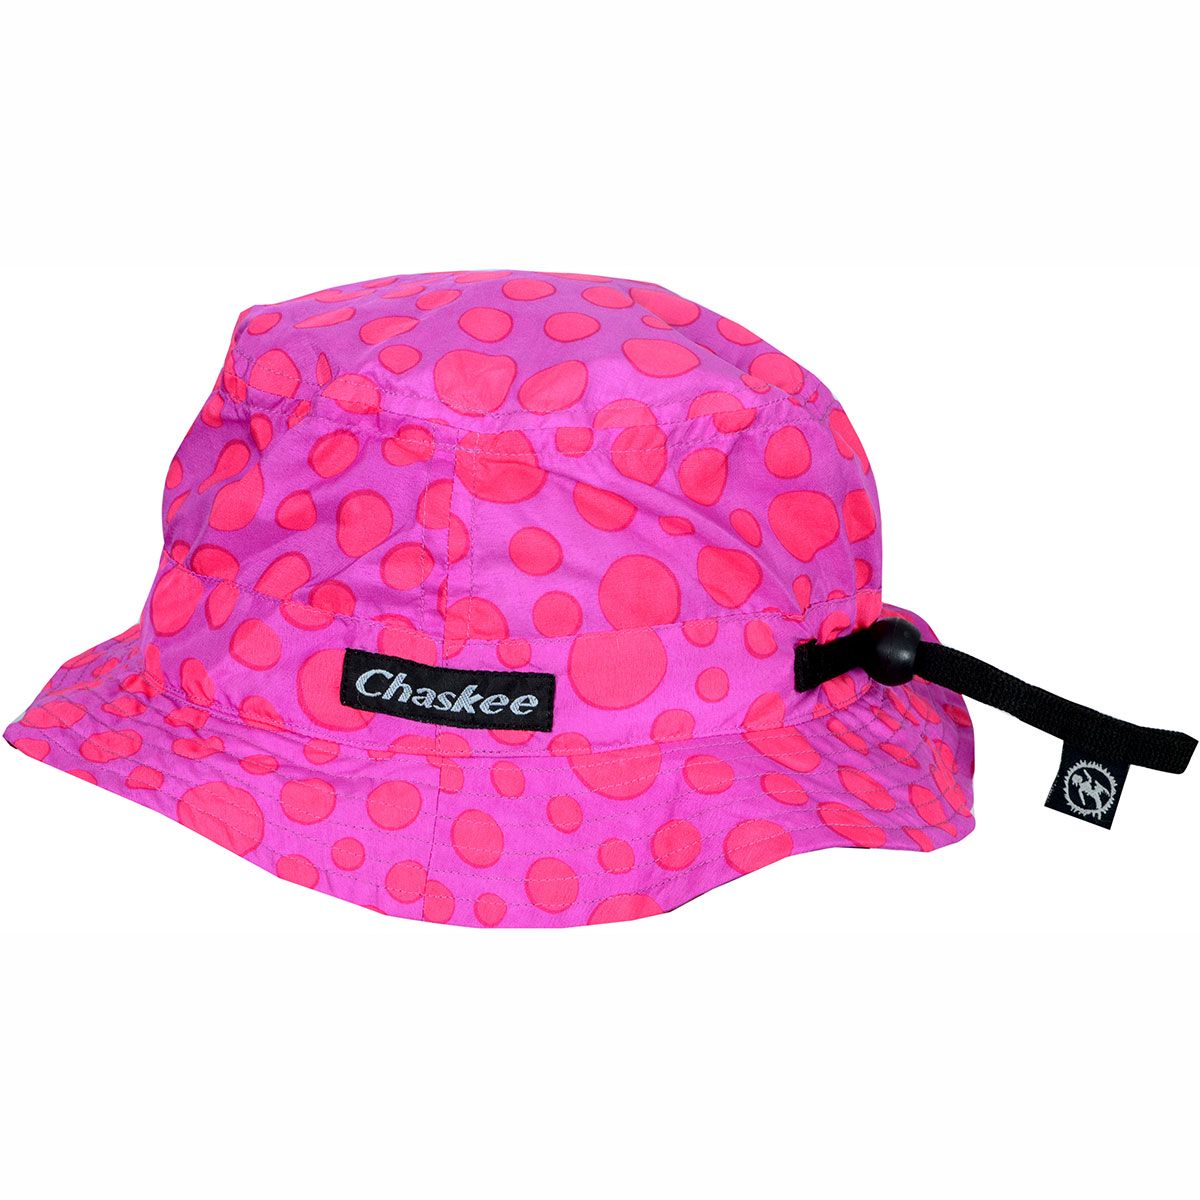 Chaskee hat